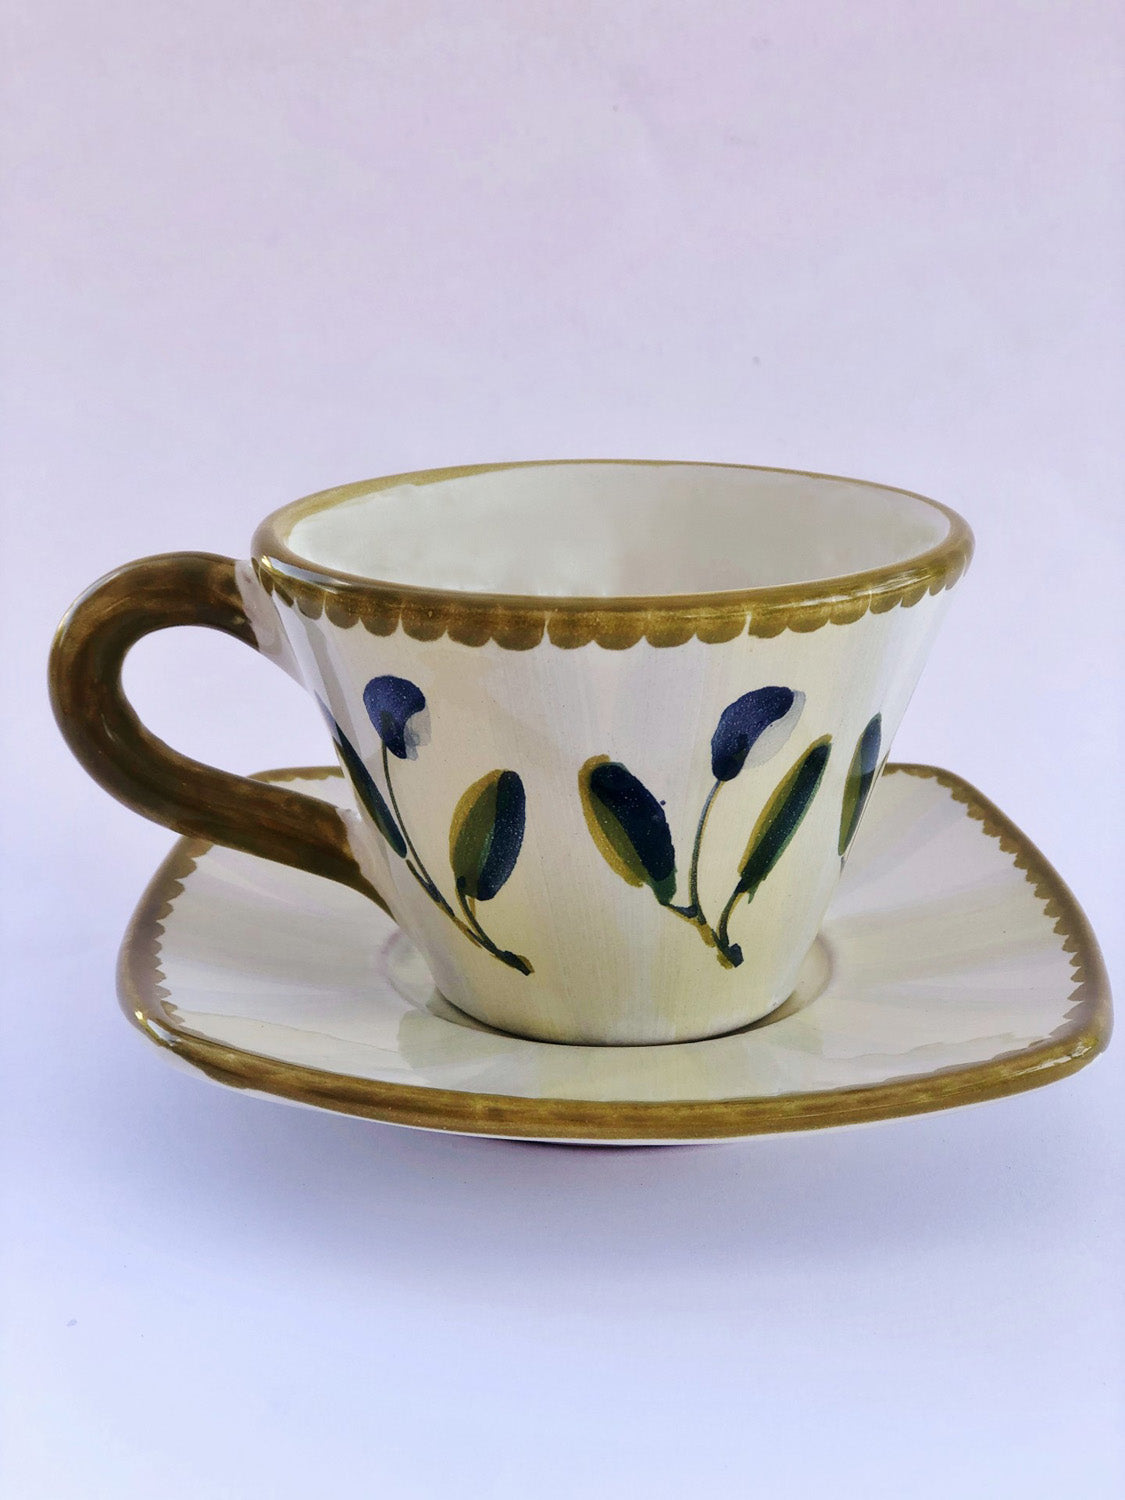 Breakfast Cup with Saucer - Handpainted Ceramics